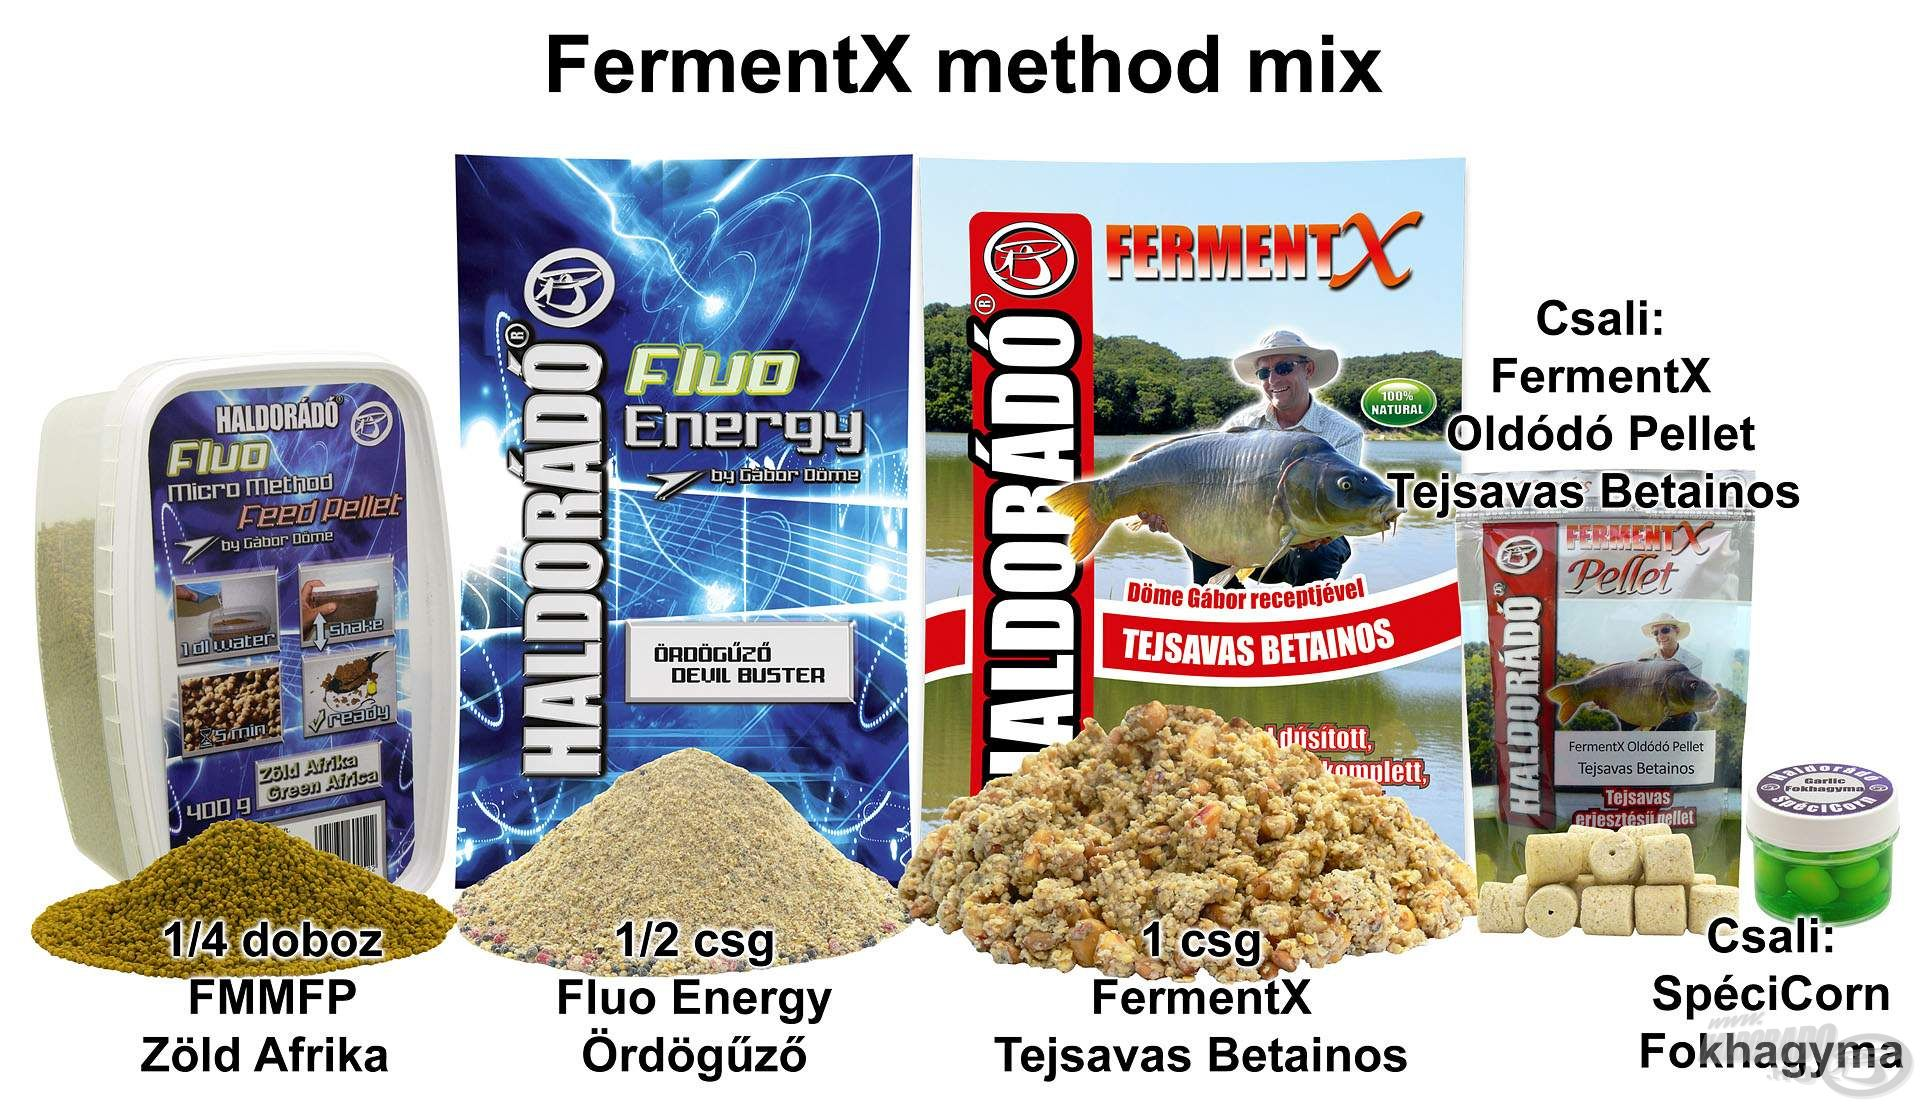 FermentX method mix